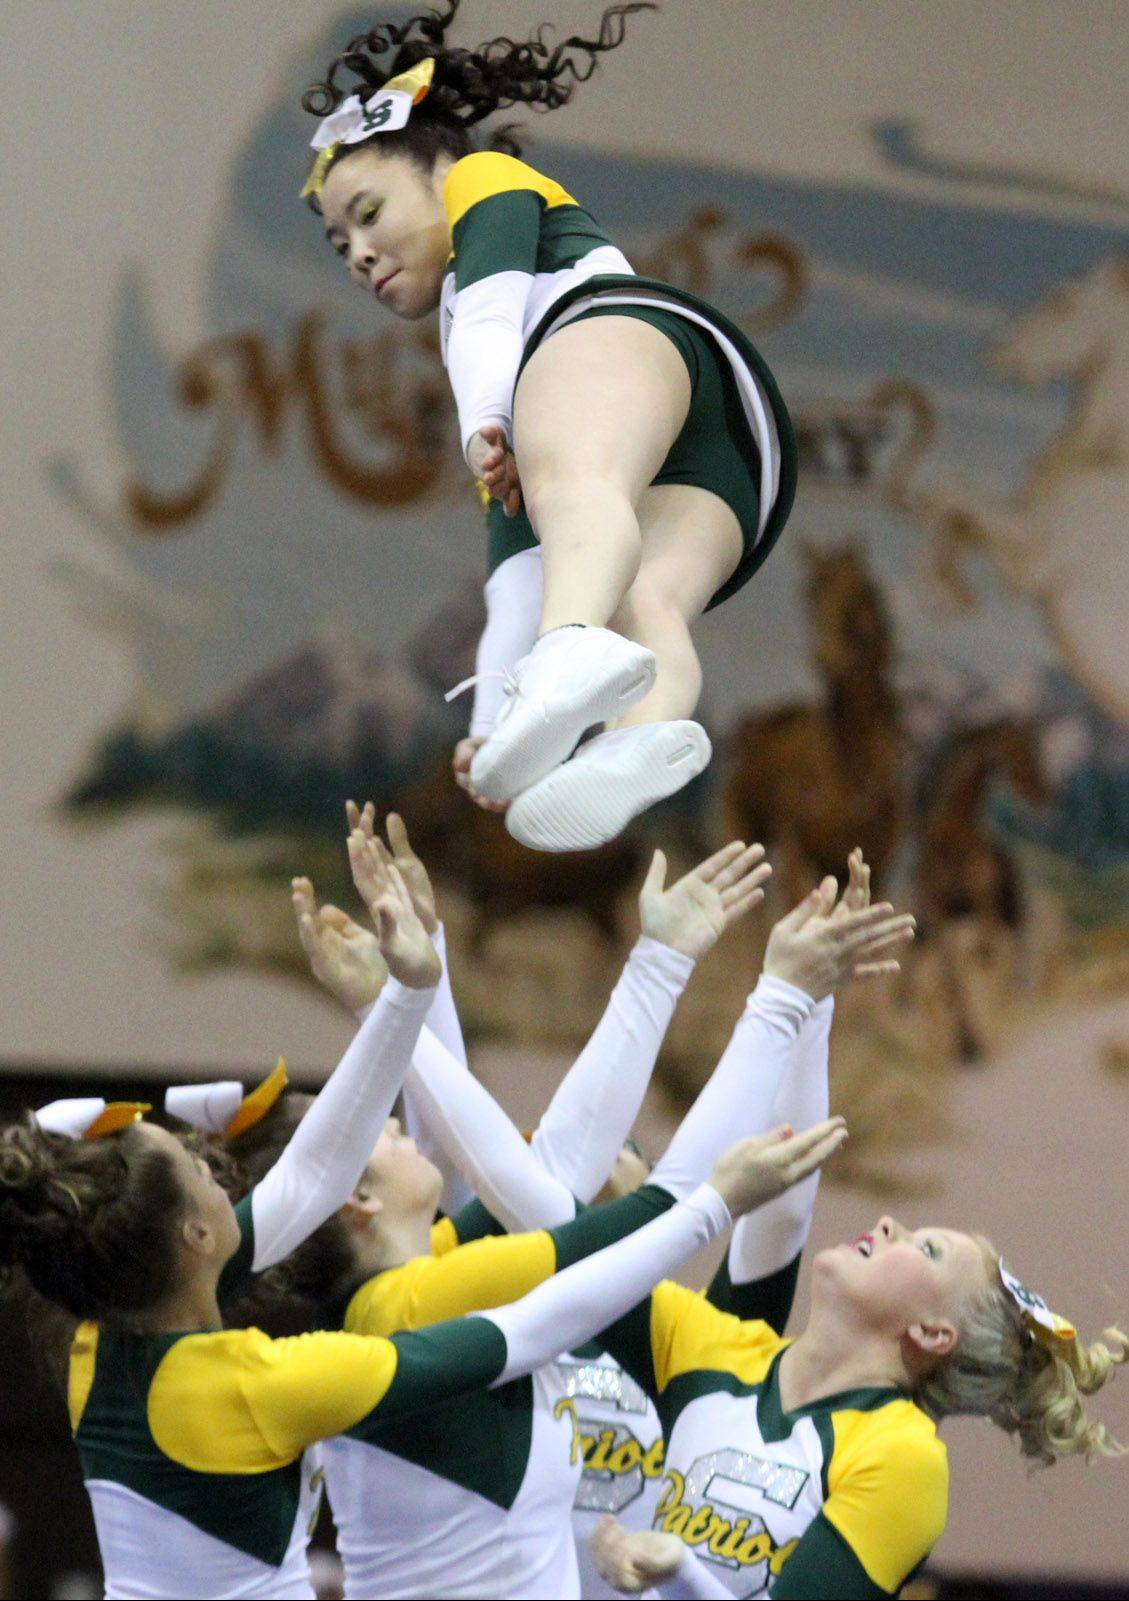 The Stevenson High School cheerleading team performed at the IHSA competitive cheerleading sectionals held Saturday at Rolling Meadows High School.